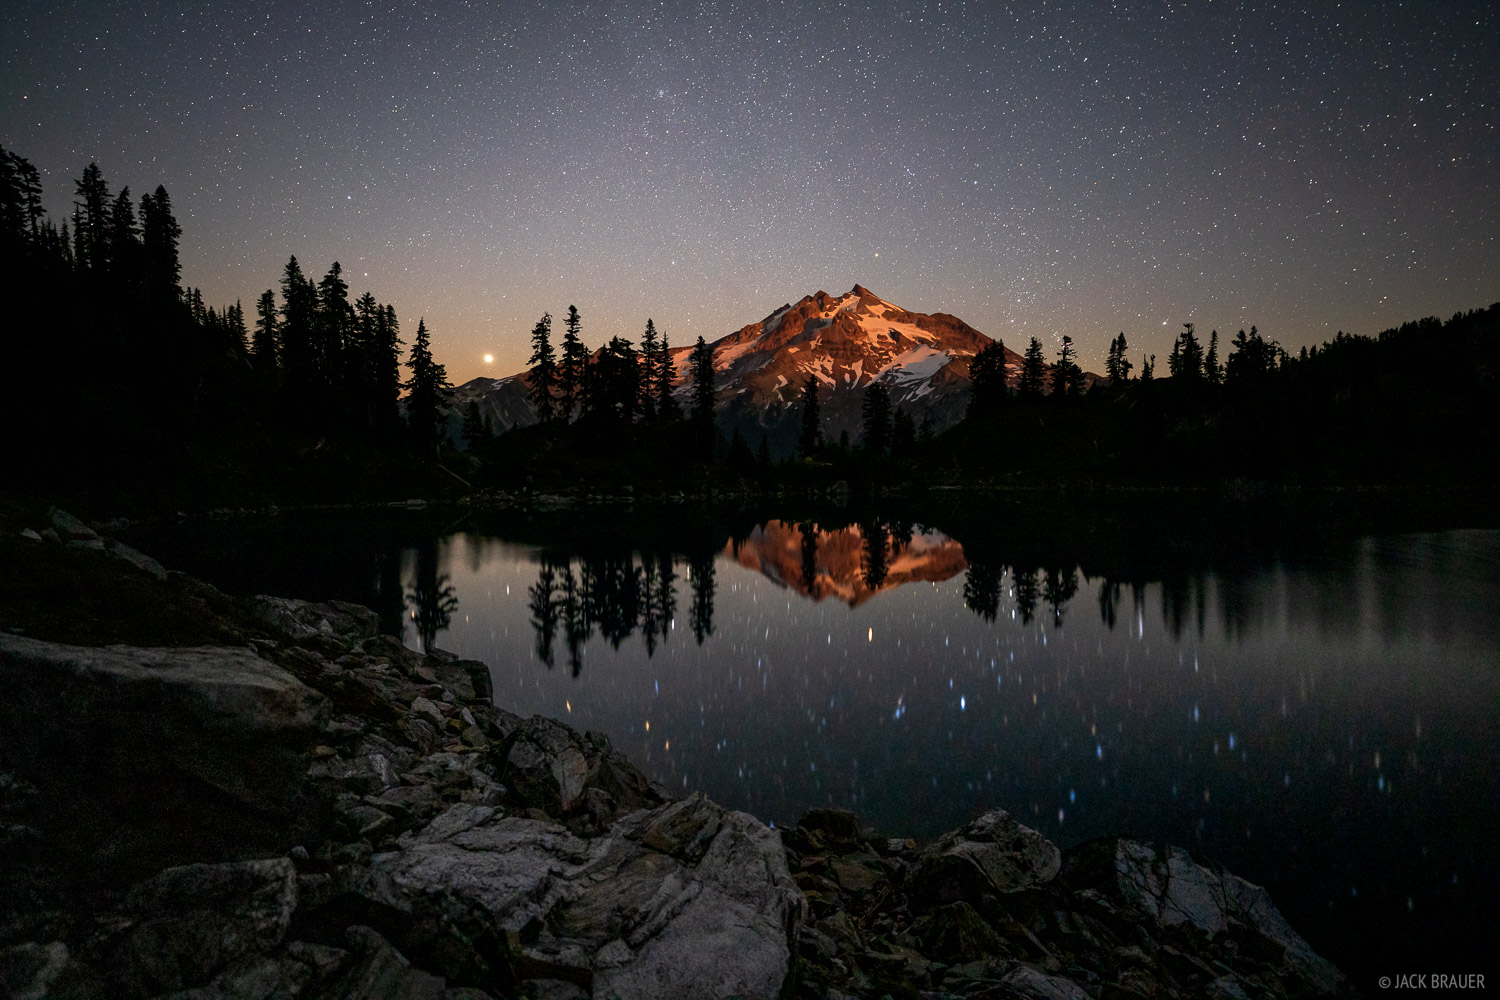 Glacier Peak, Glacier Peak Wilderness, Lake Byrne, Washington, moonlight, stars, Cascades, photo